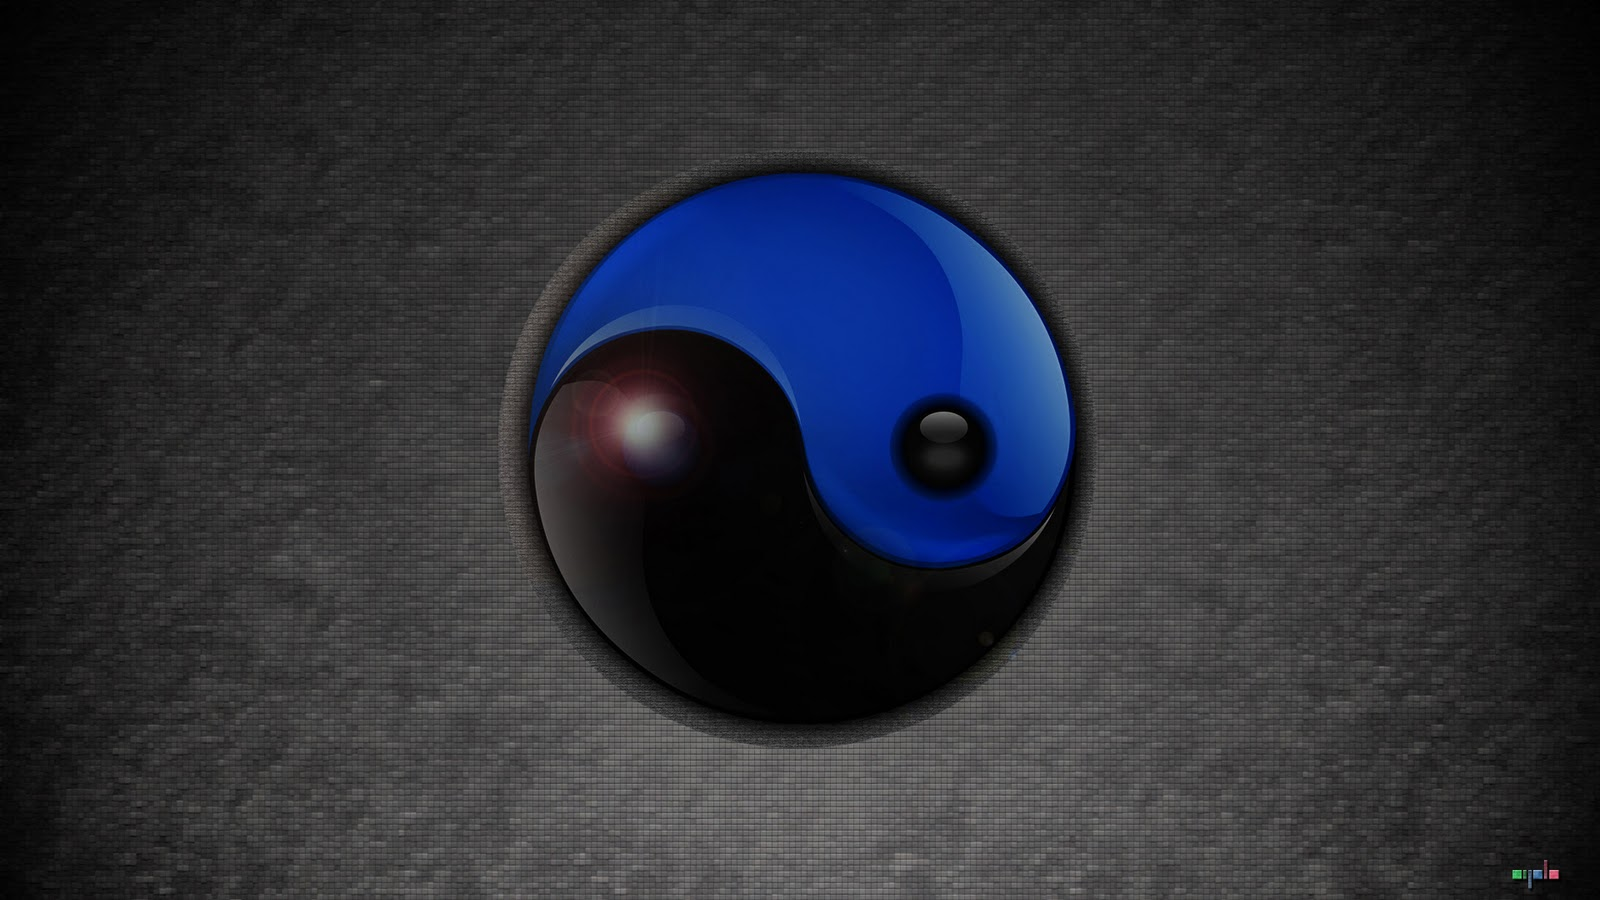 yin-yang full hd wallpapers part 2 - wallpapers full hd